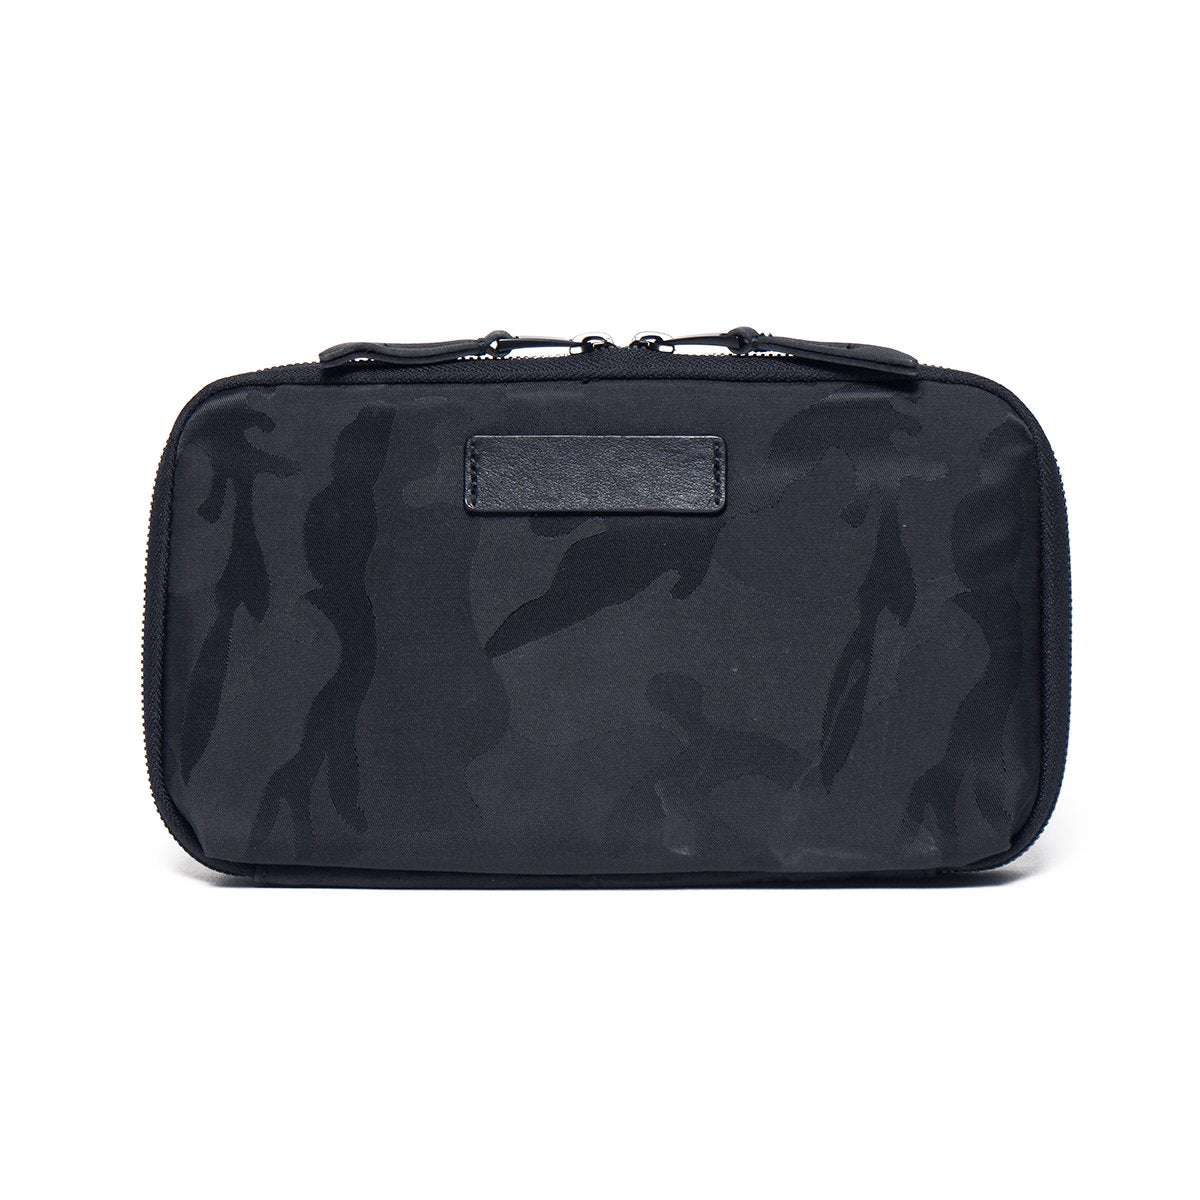 "KNOMO Knomad Travel Wallet Travel Organiser From Back 8"" -  Black Camouflage 